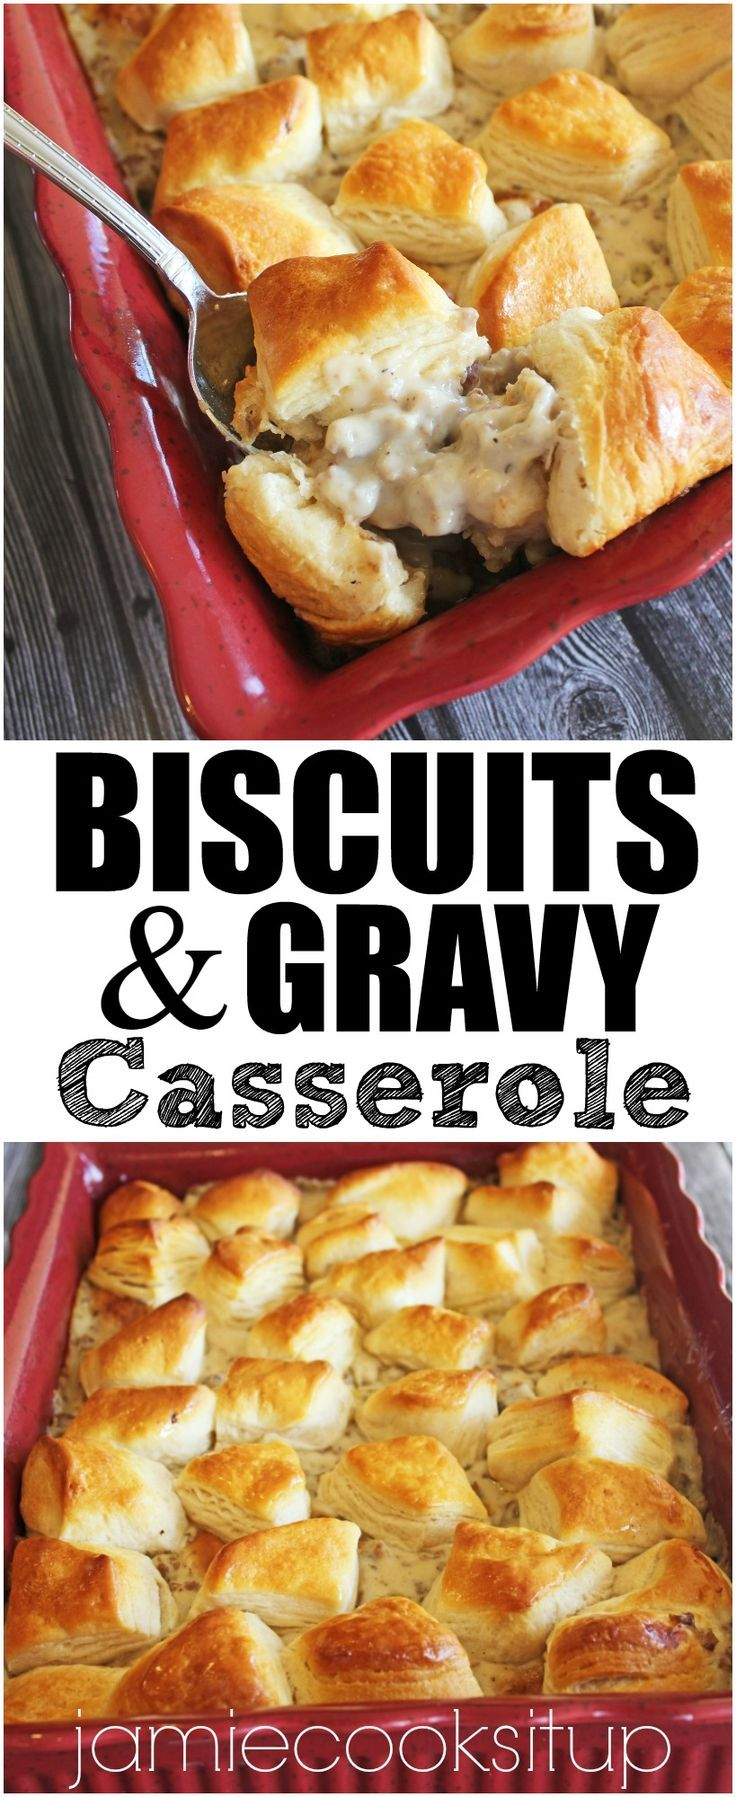 Biscuits and Gravy Casserole from Jamie Cooks It Up! Perfect for breakfast or dinner.